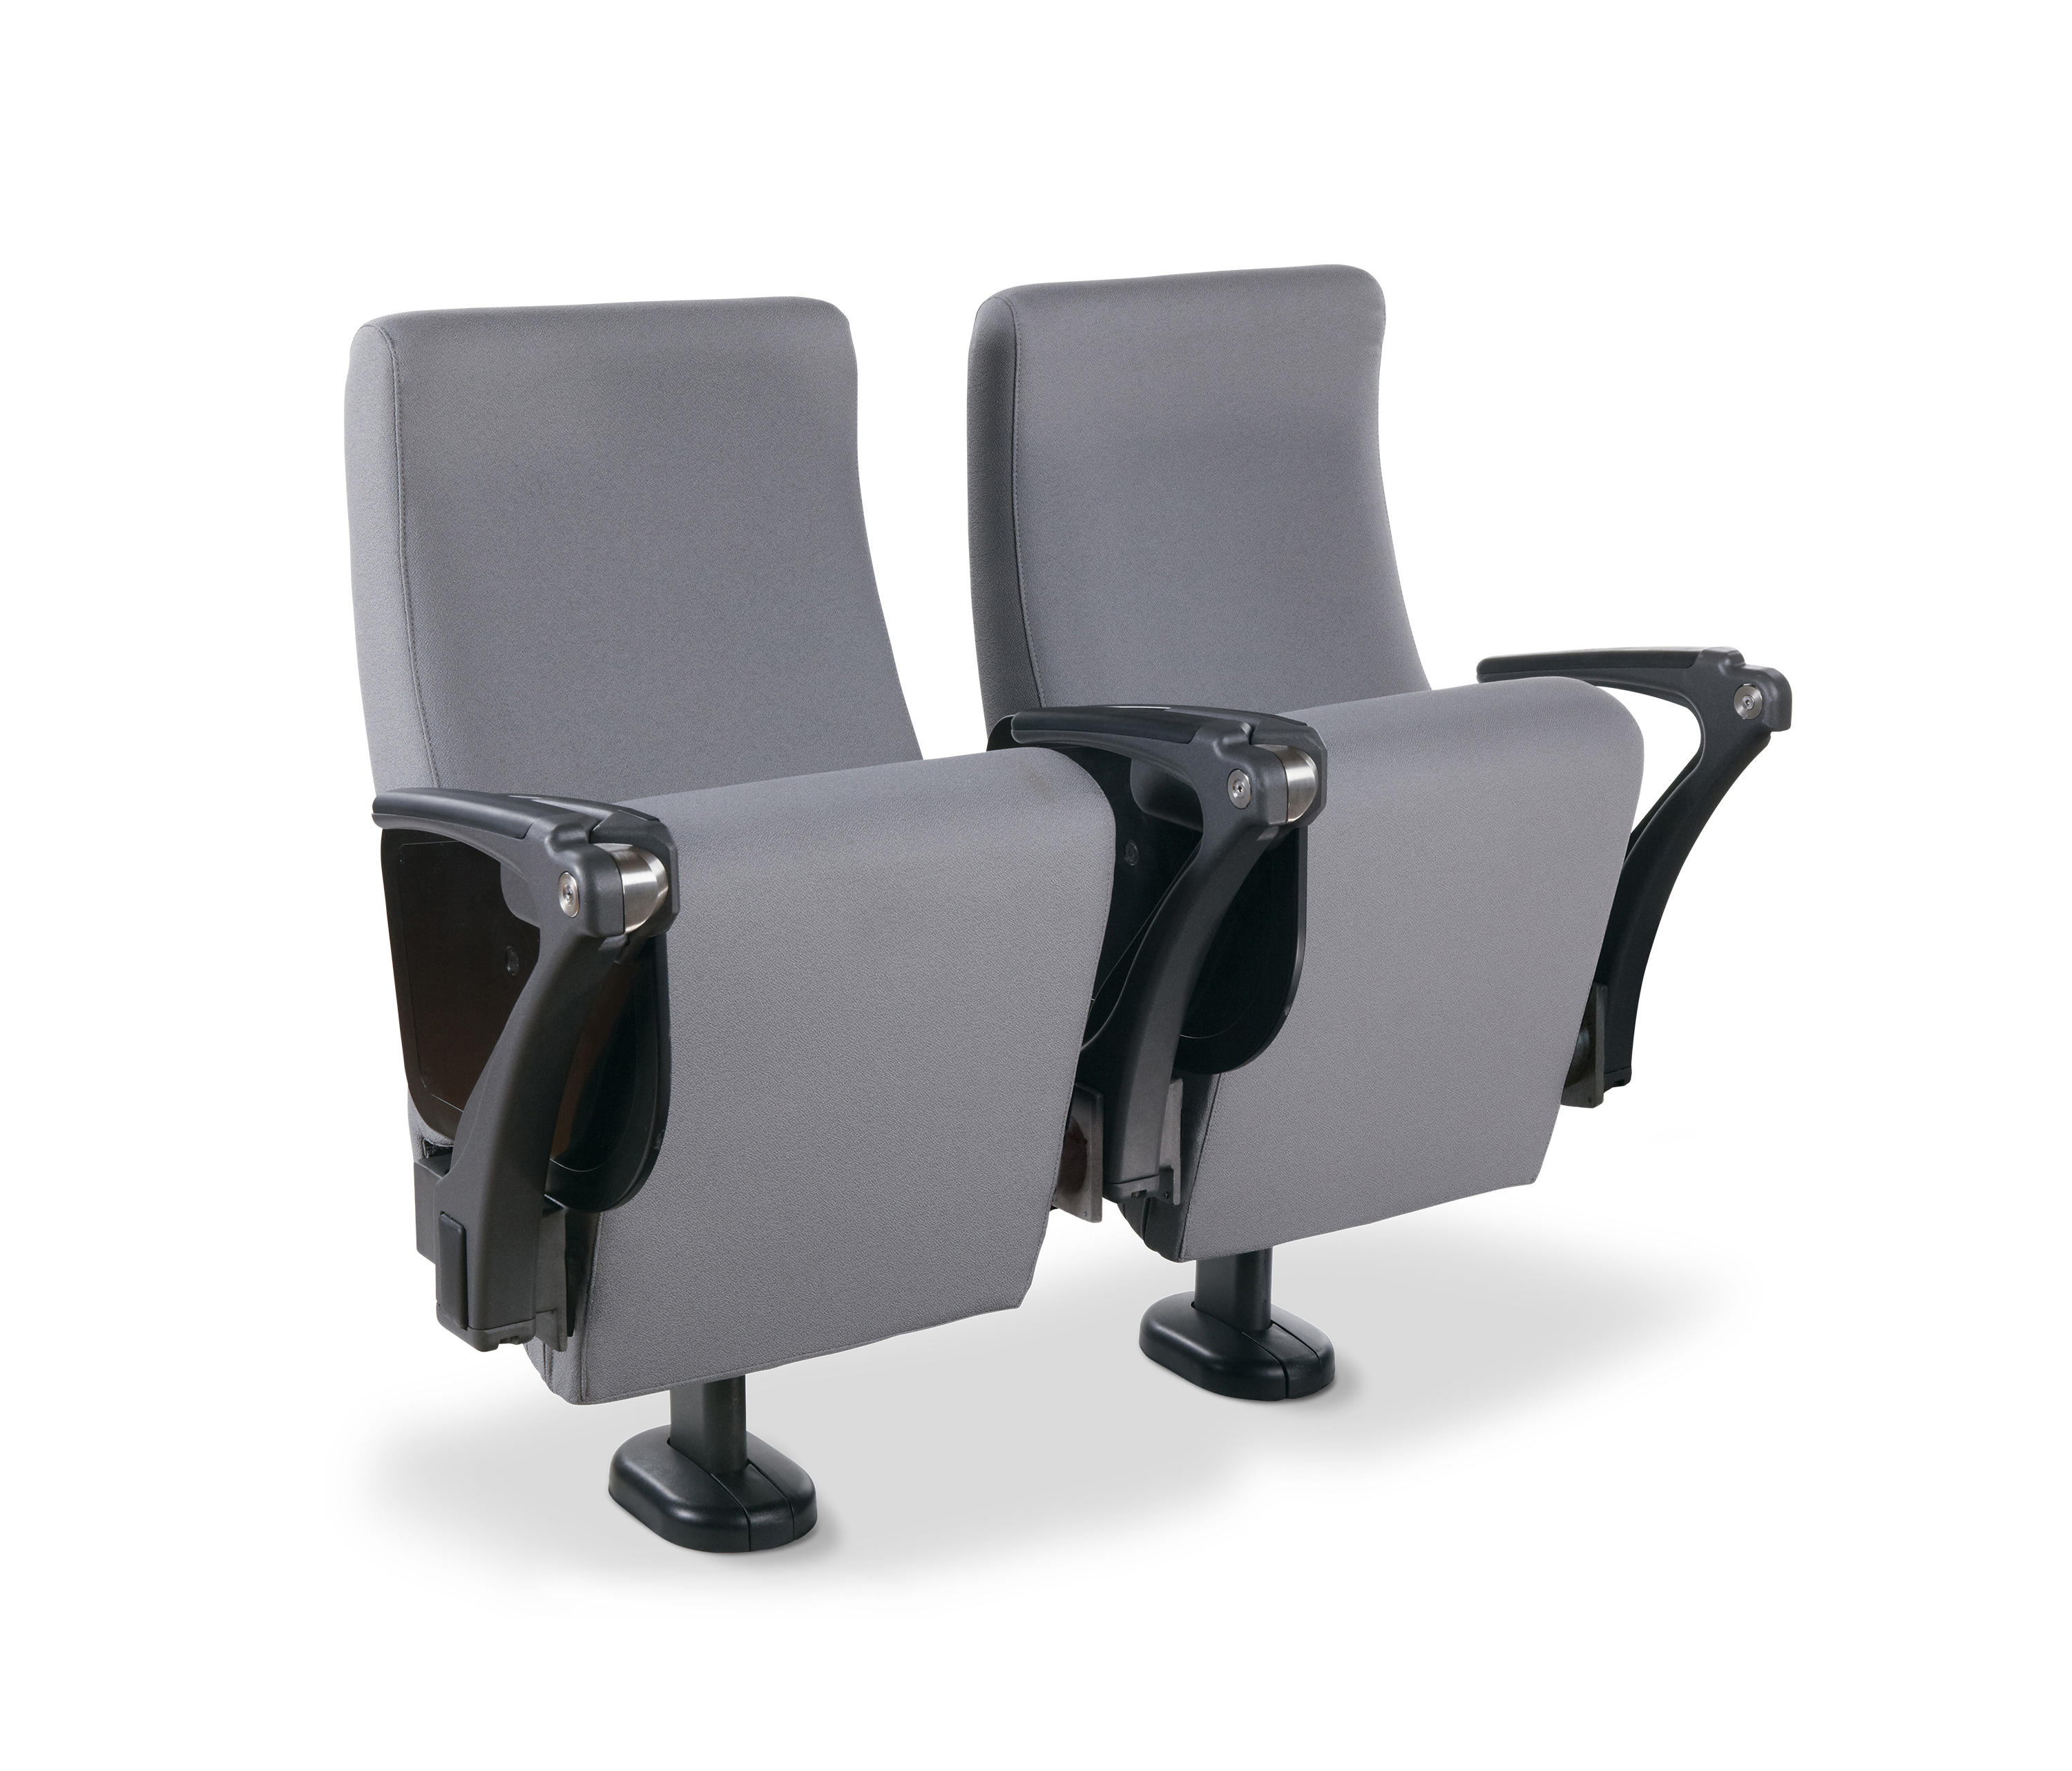 Ft20 Auditorium Seating From Sedia Systems Inc Architonic - Sedia Inc